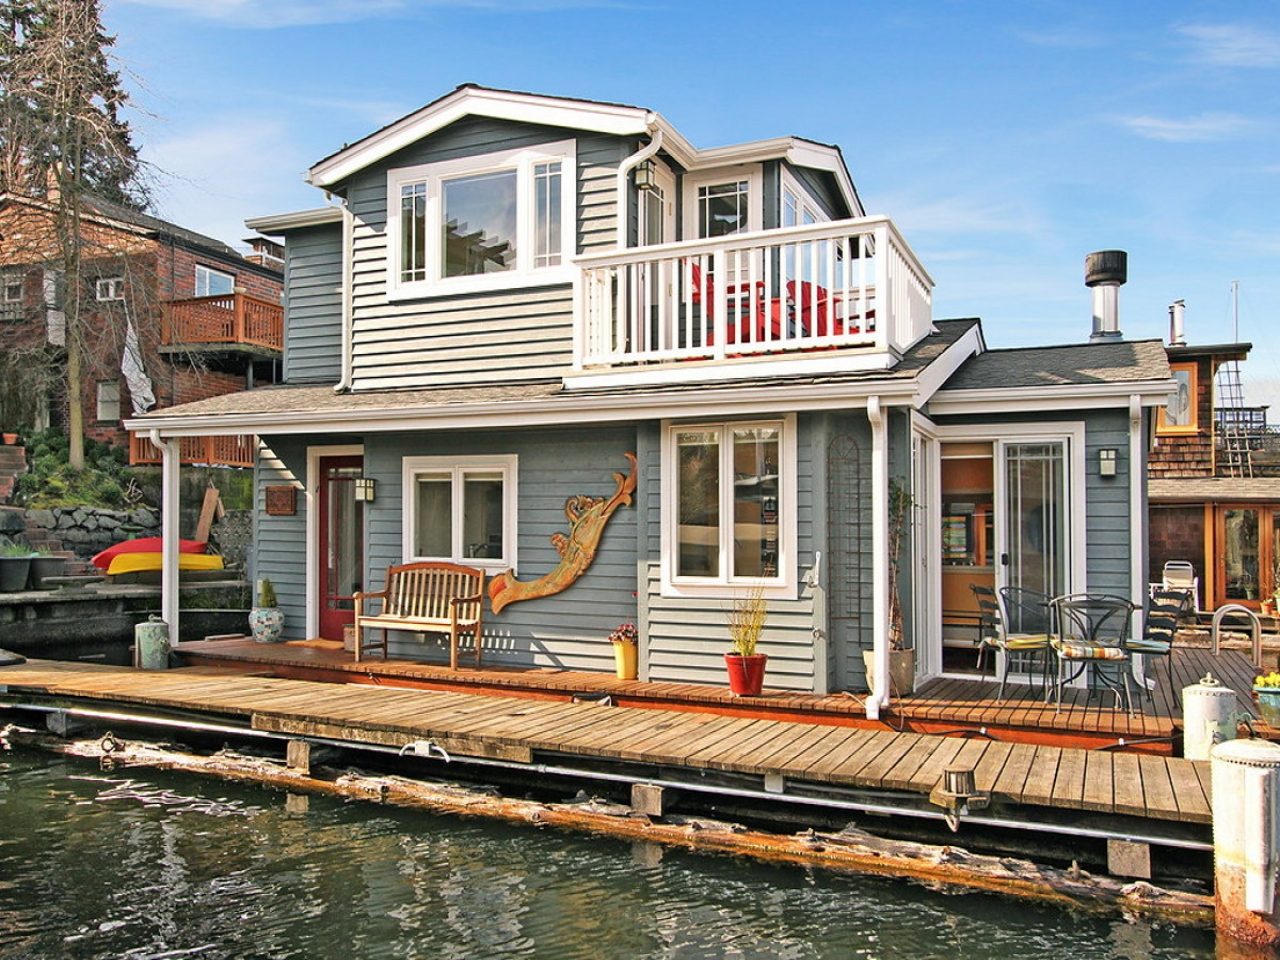 Craftsman style portage bay float house small house bliss for Small house bliss